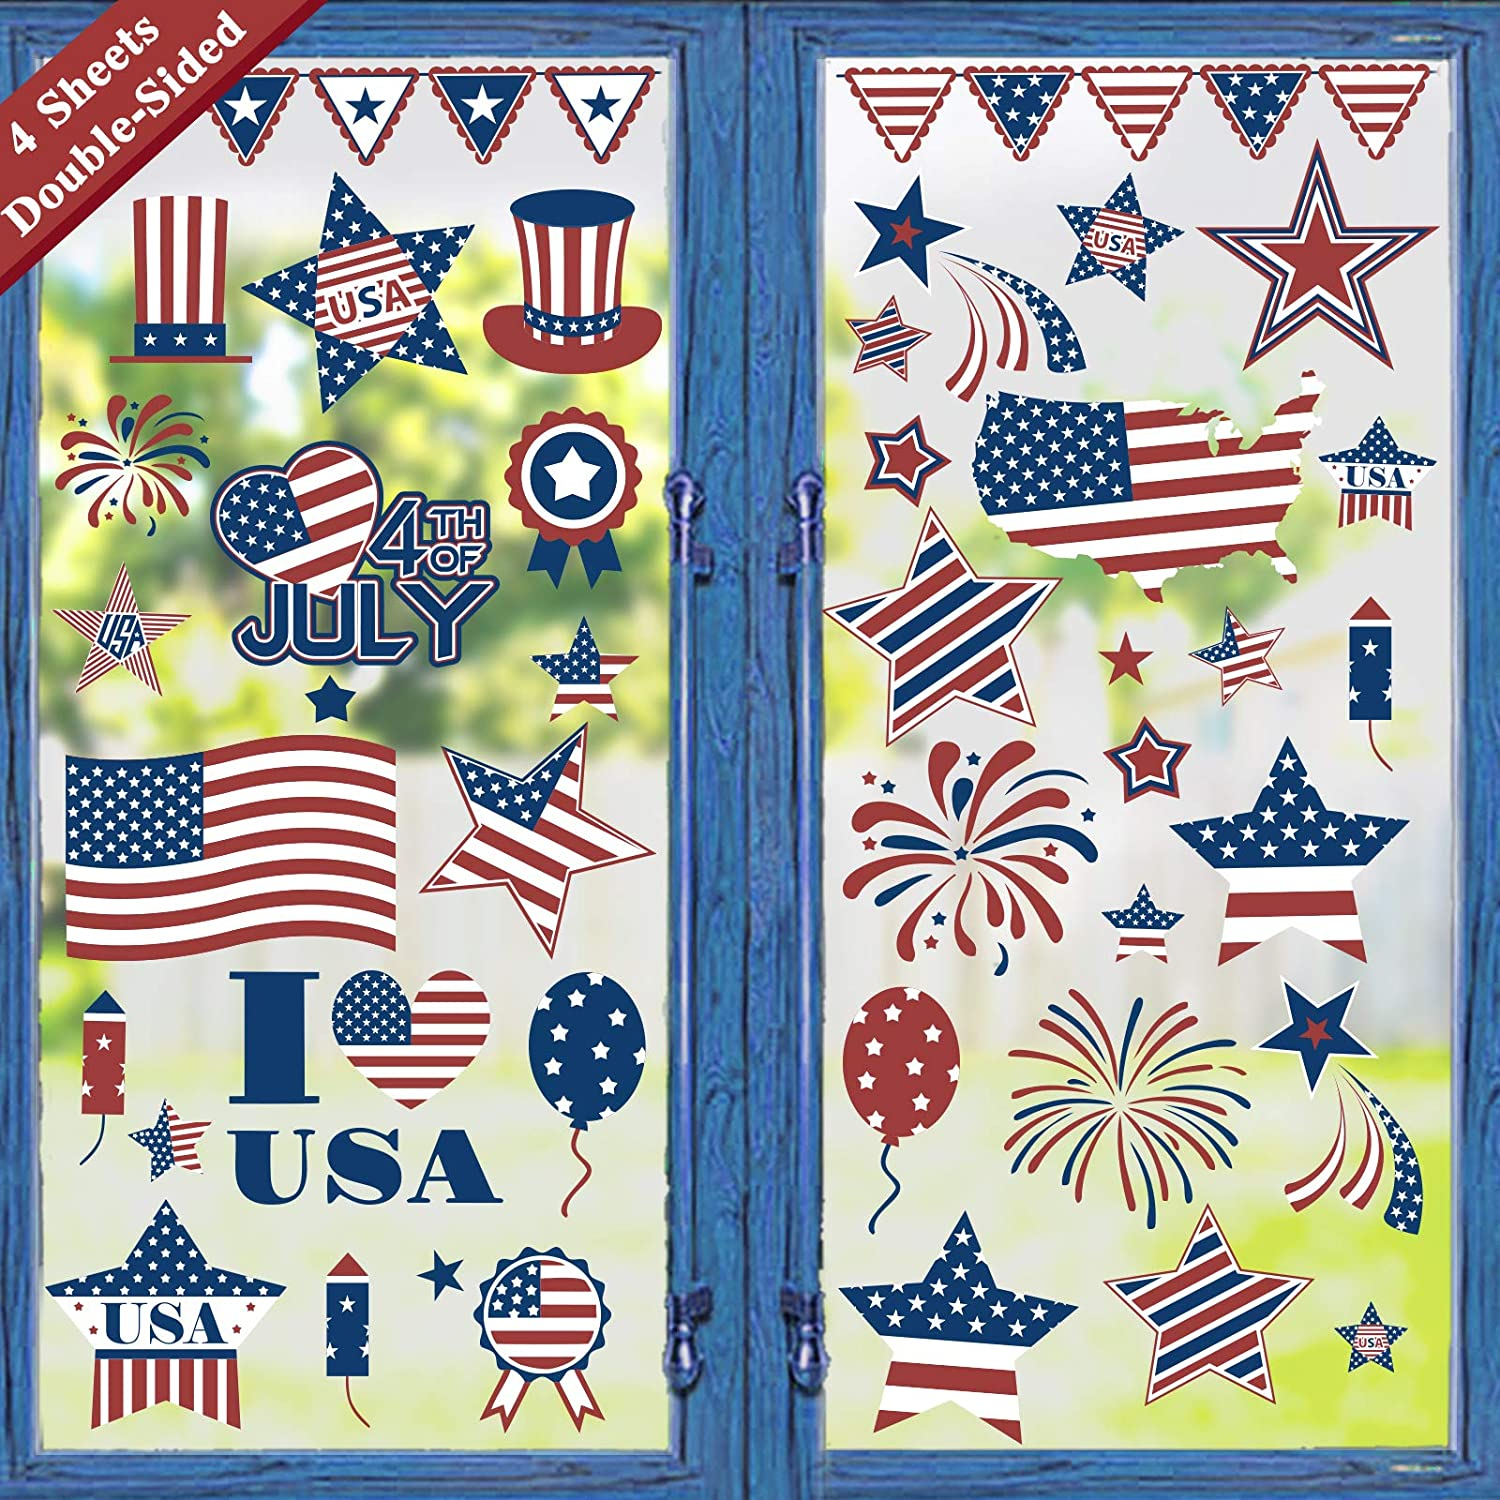 Ivenf 4th of July Decorations Window Clings Decor, July Fourth Patriotic Decorations for Home School Office, Stars Fireworks Flags Map Party Supplies, 4 Large Sheets 78 ct